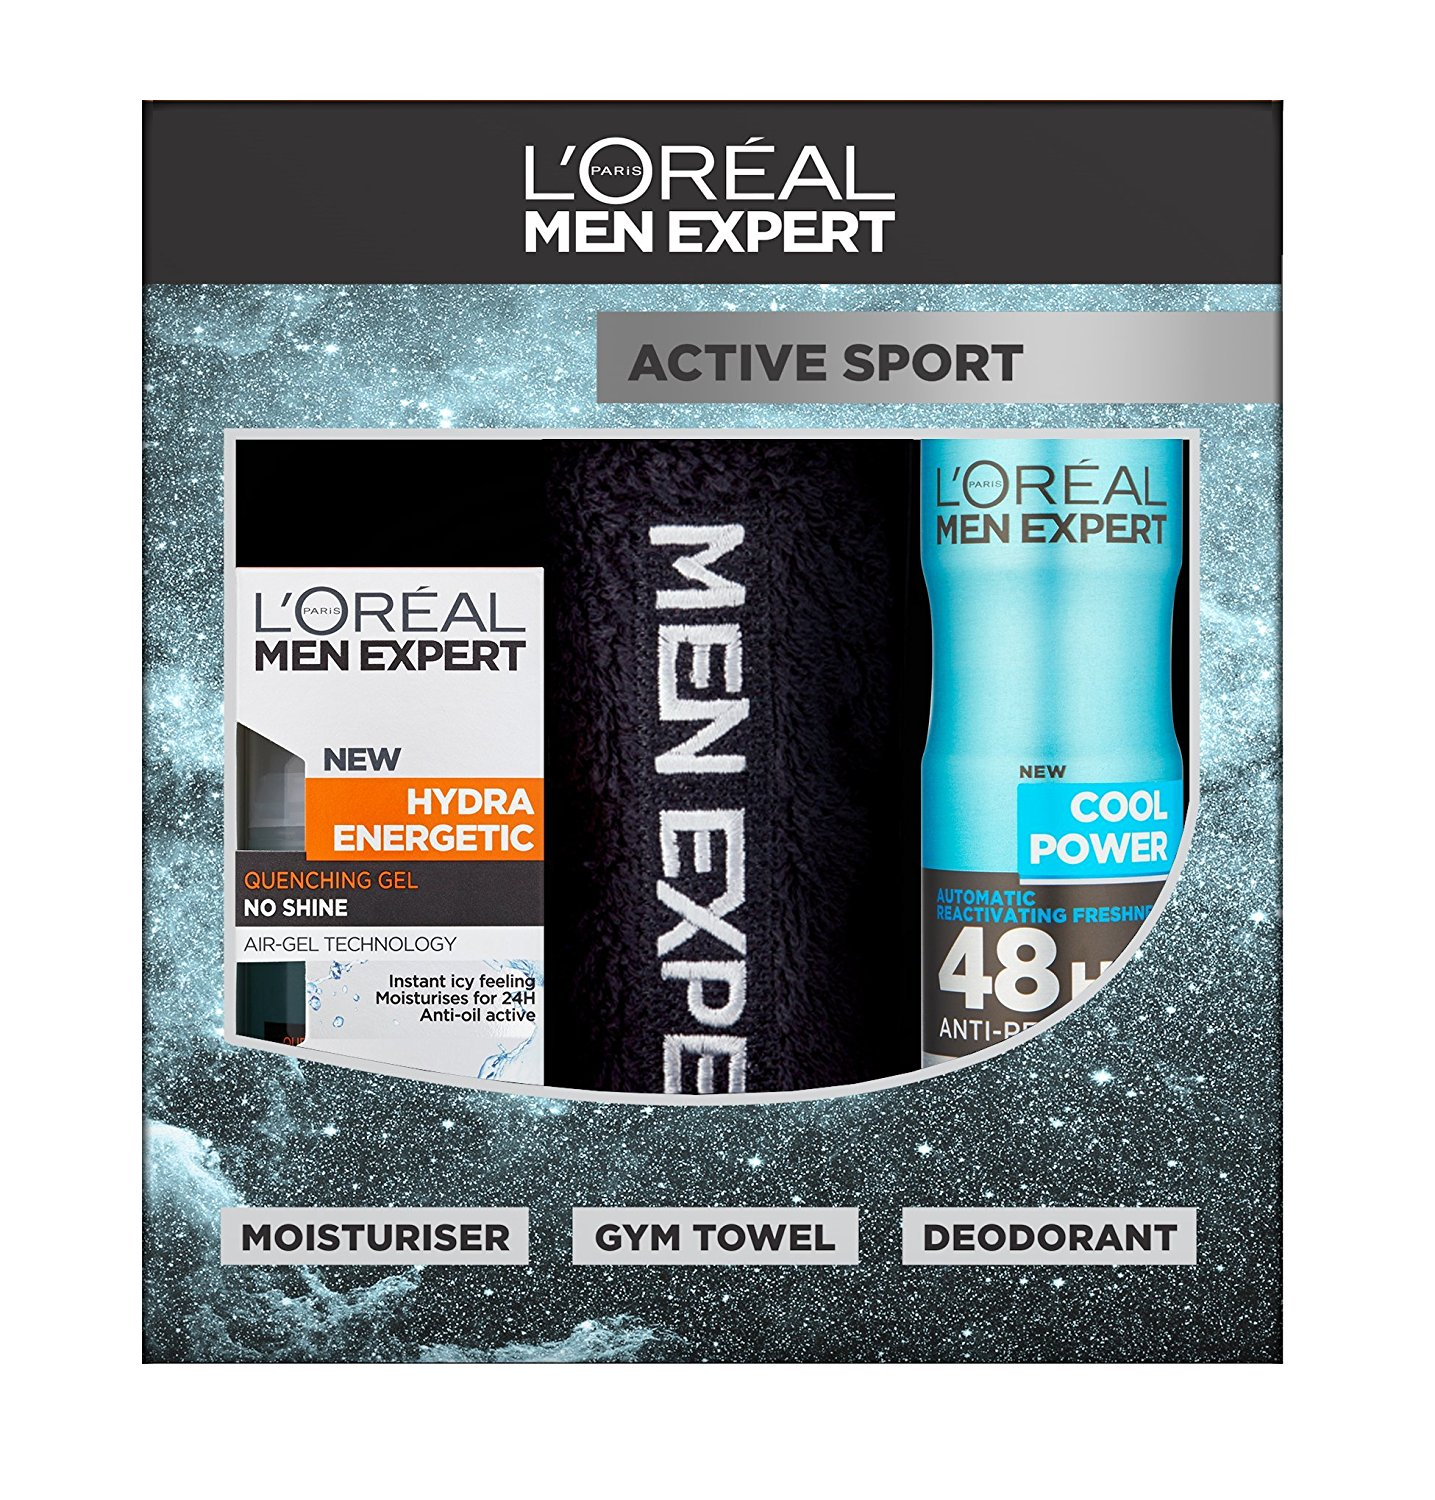 L Oreal Men Expert Active Sport 3 Piece T Set Hydra Energetic Moisturiser Mini Towel And